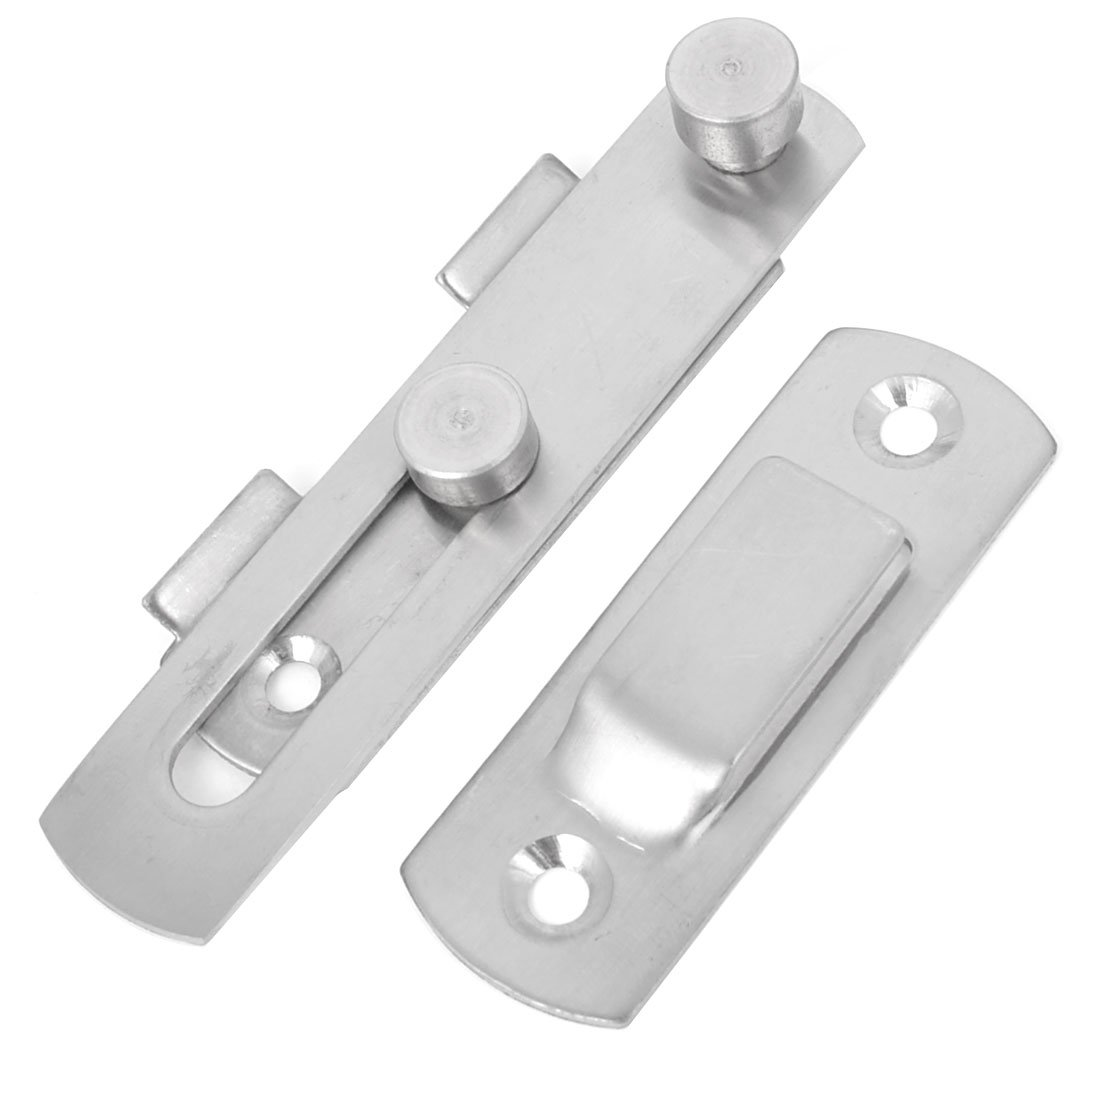 Uxcell a14052100ux0690 Stainless Steel Office Door Latch Catch Bolt Guard Set, Silver Tone